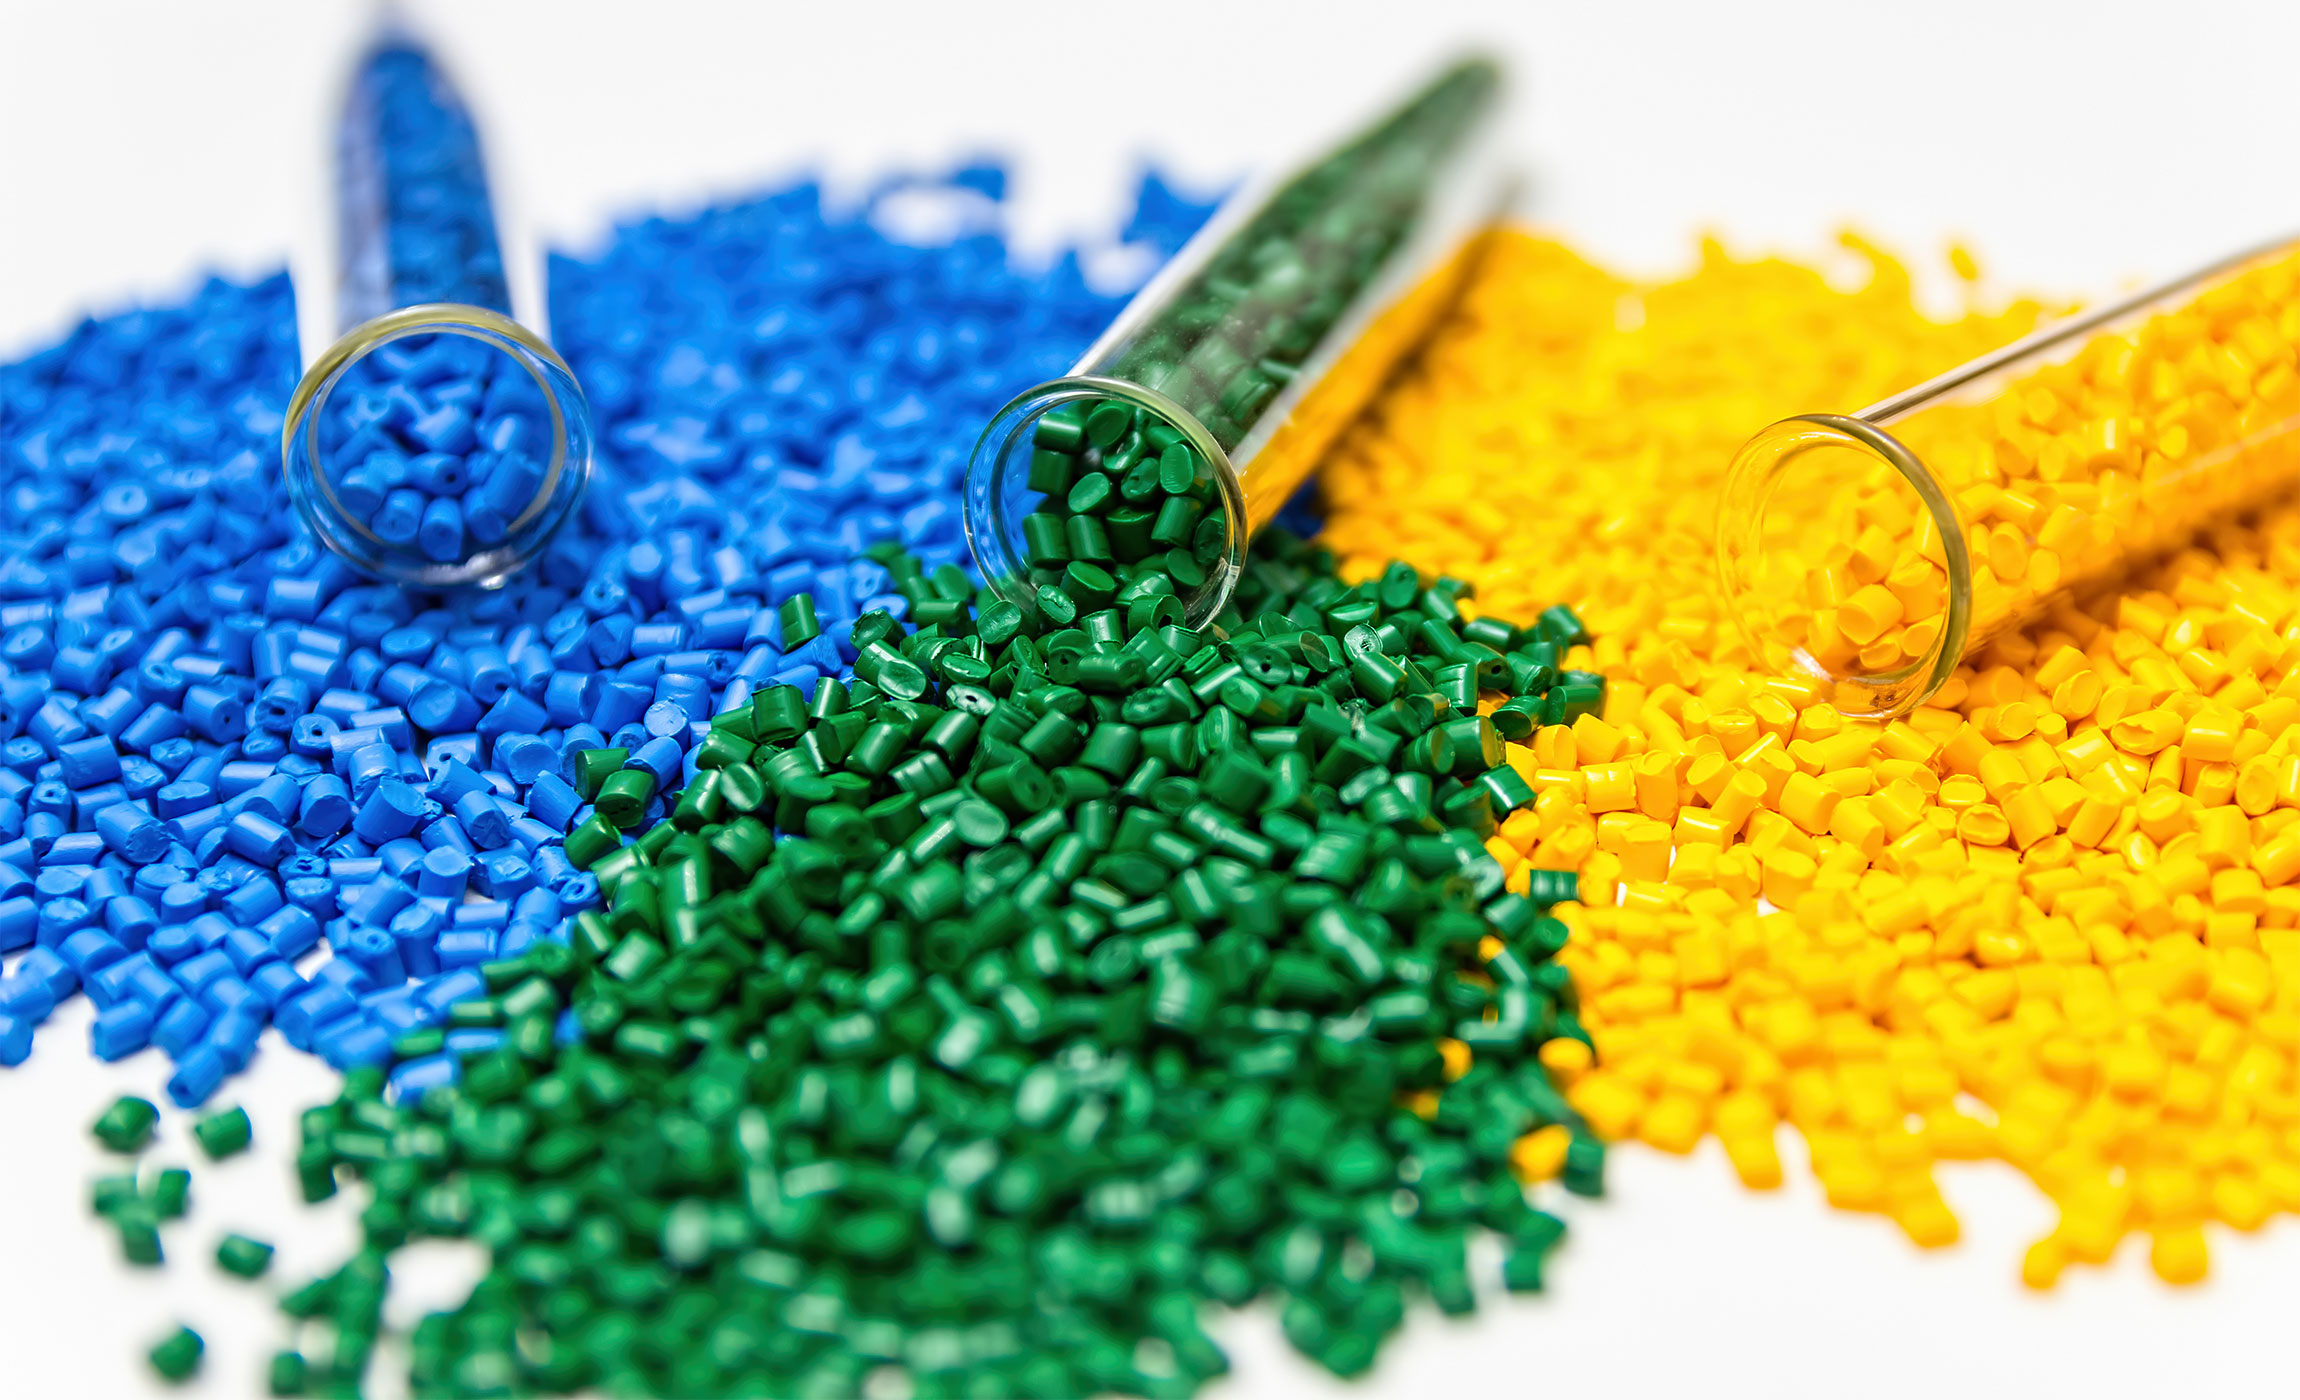 Rapid Analysis of Plastic Pellets